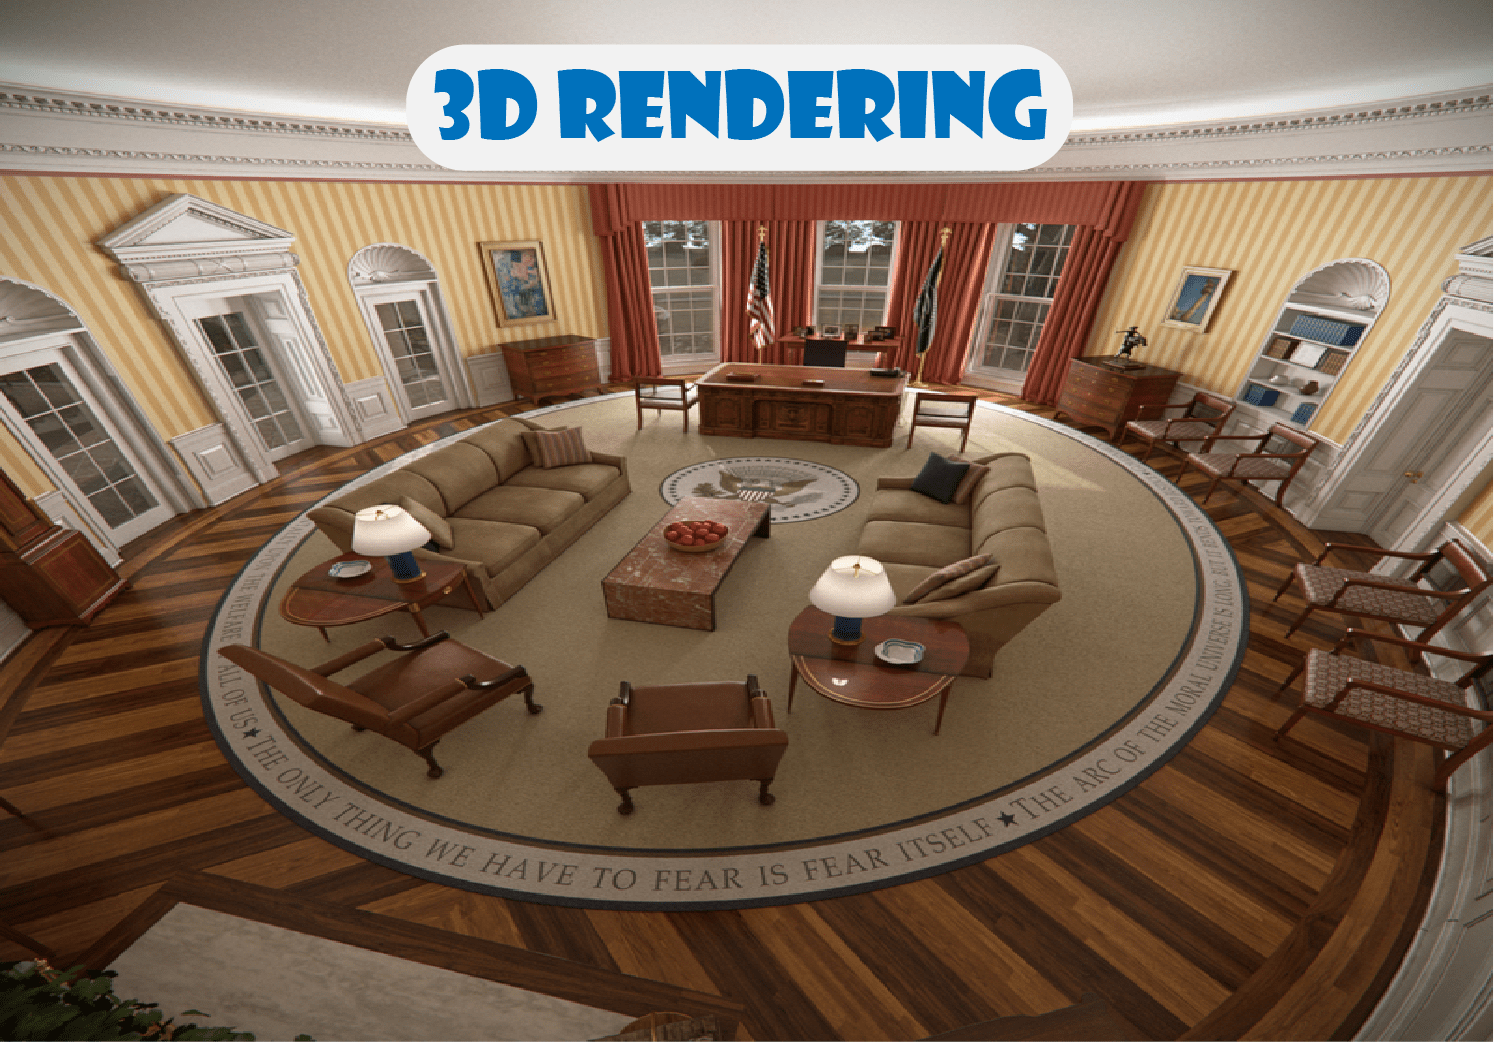 3D rendering market and opportunity